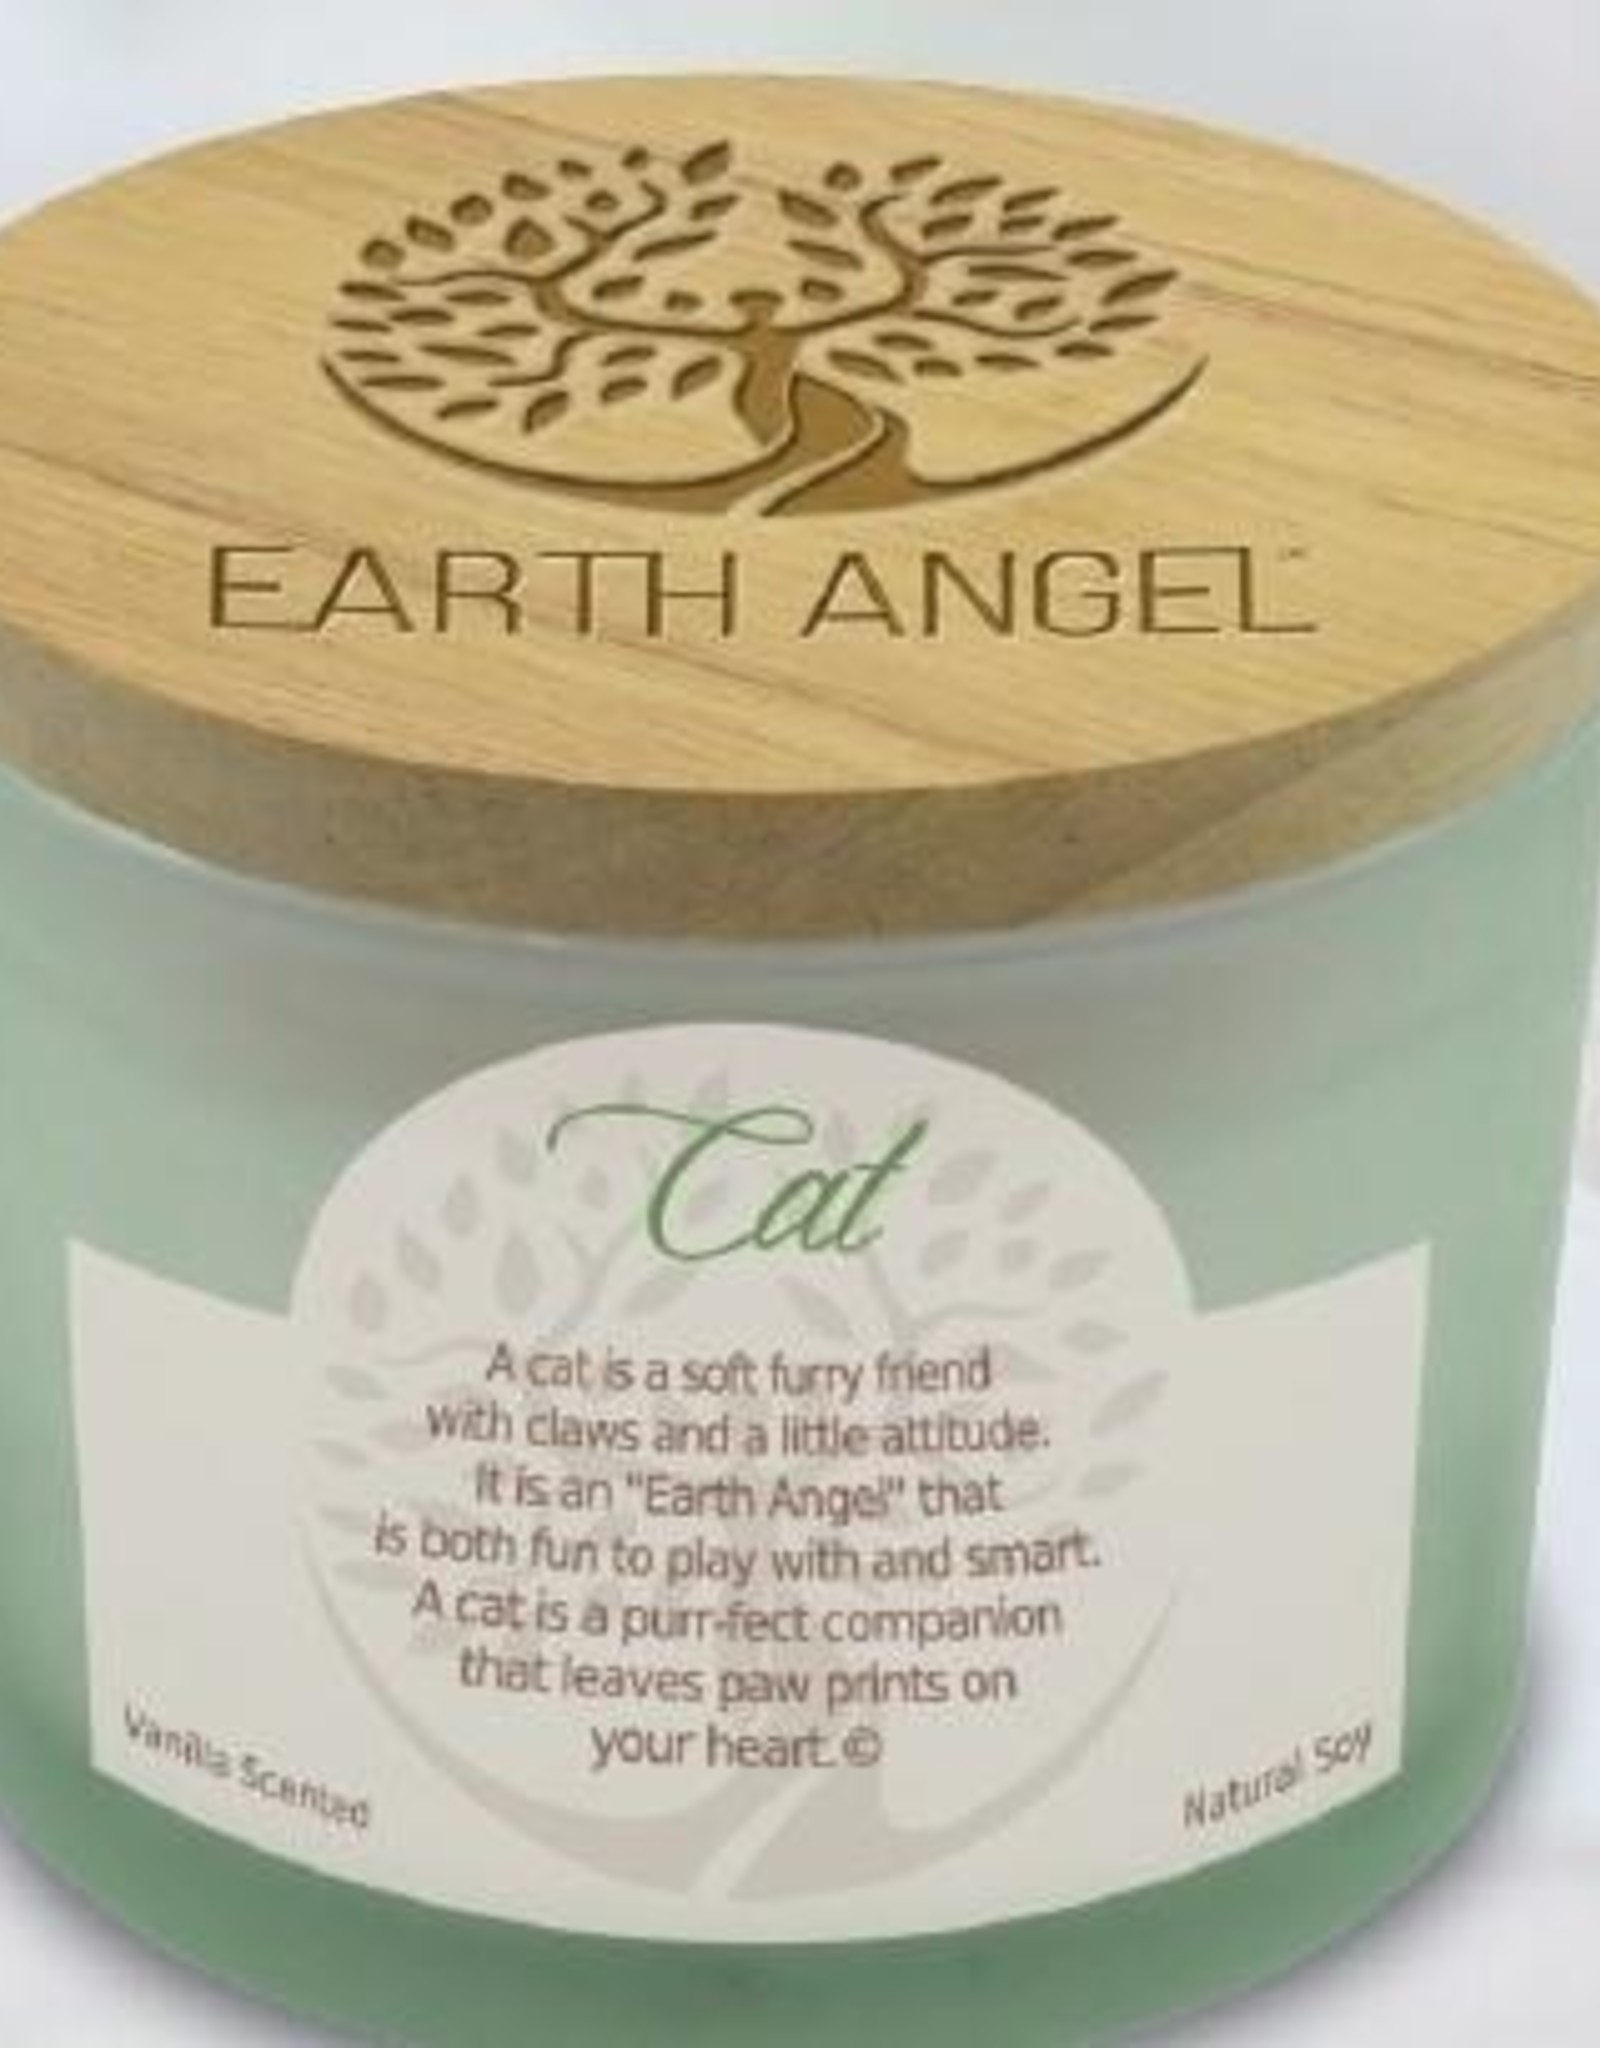 EARTH ANGEL Earth Angel Candle - Cat